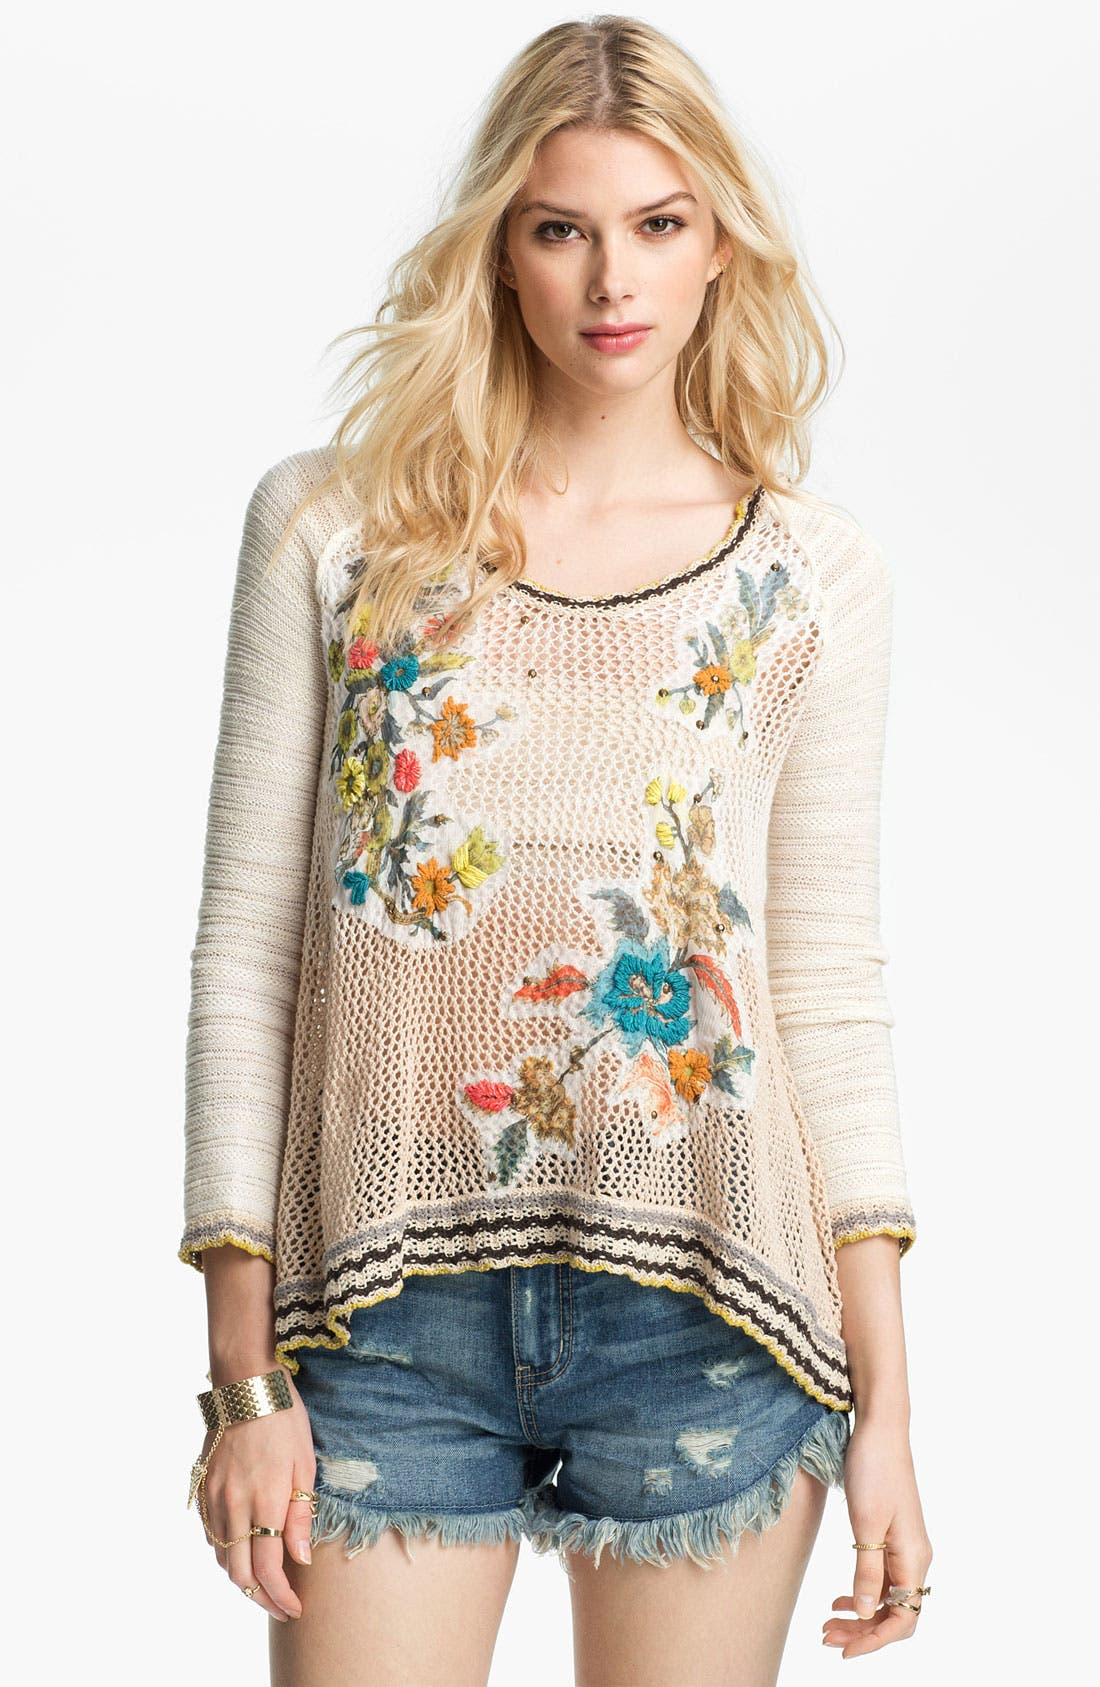 Main Image - Free People 'Menagerie' Embroidered Crochet Sweater